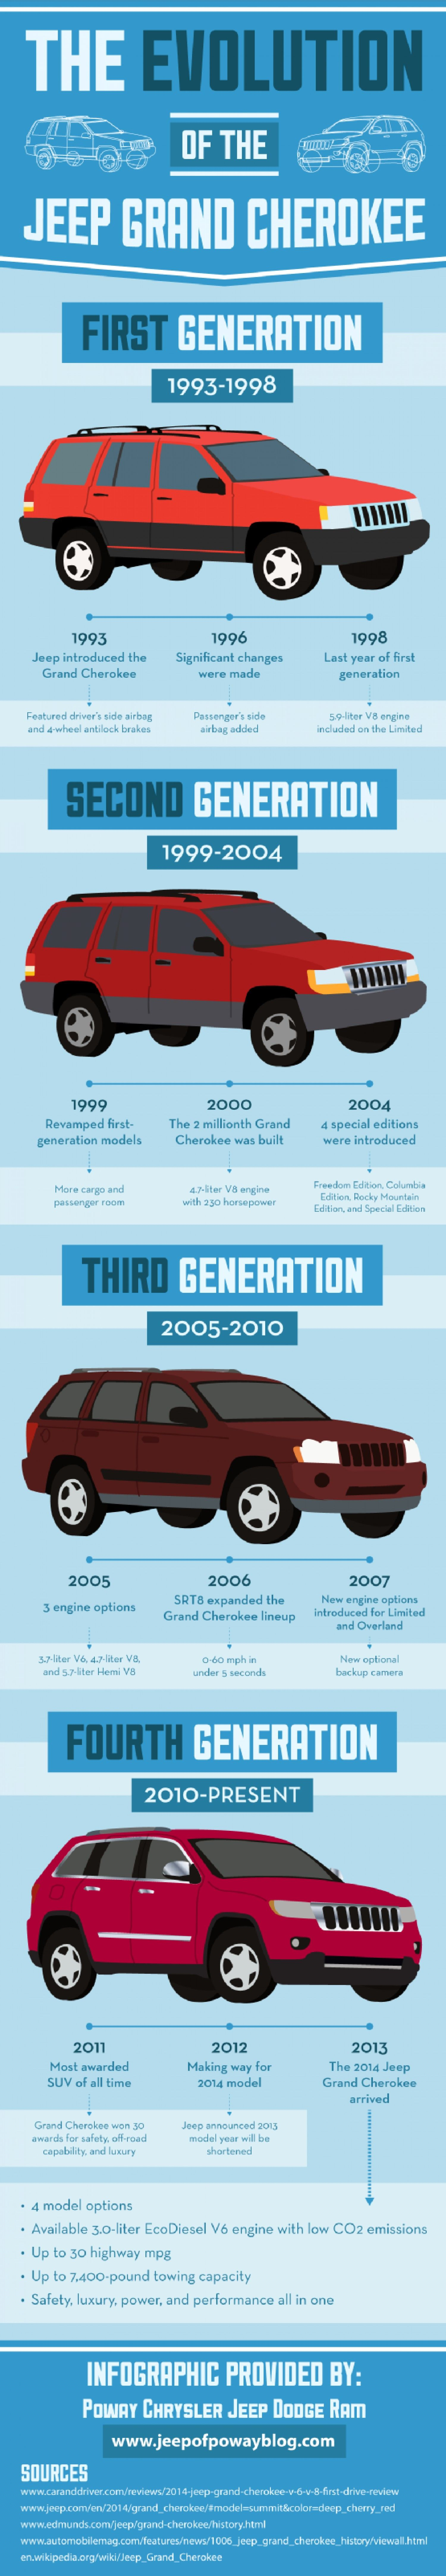 Lake Elsinore Dodge >> Hey San Diego, Check Out the Evolution of the Jeep Grand ...